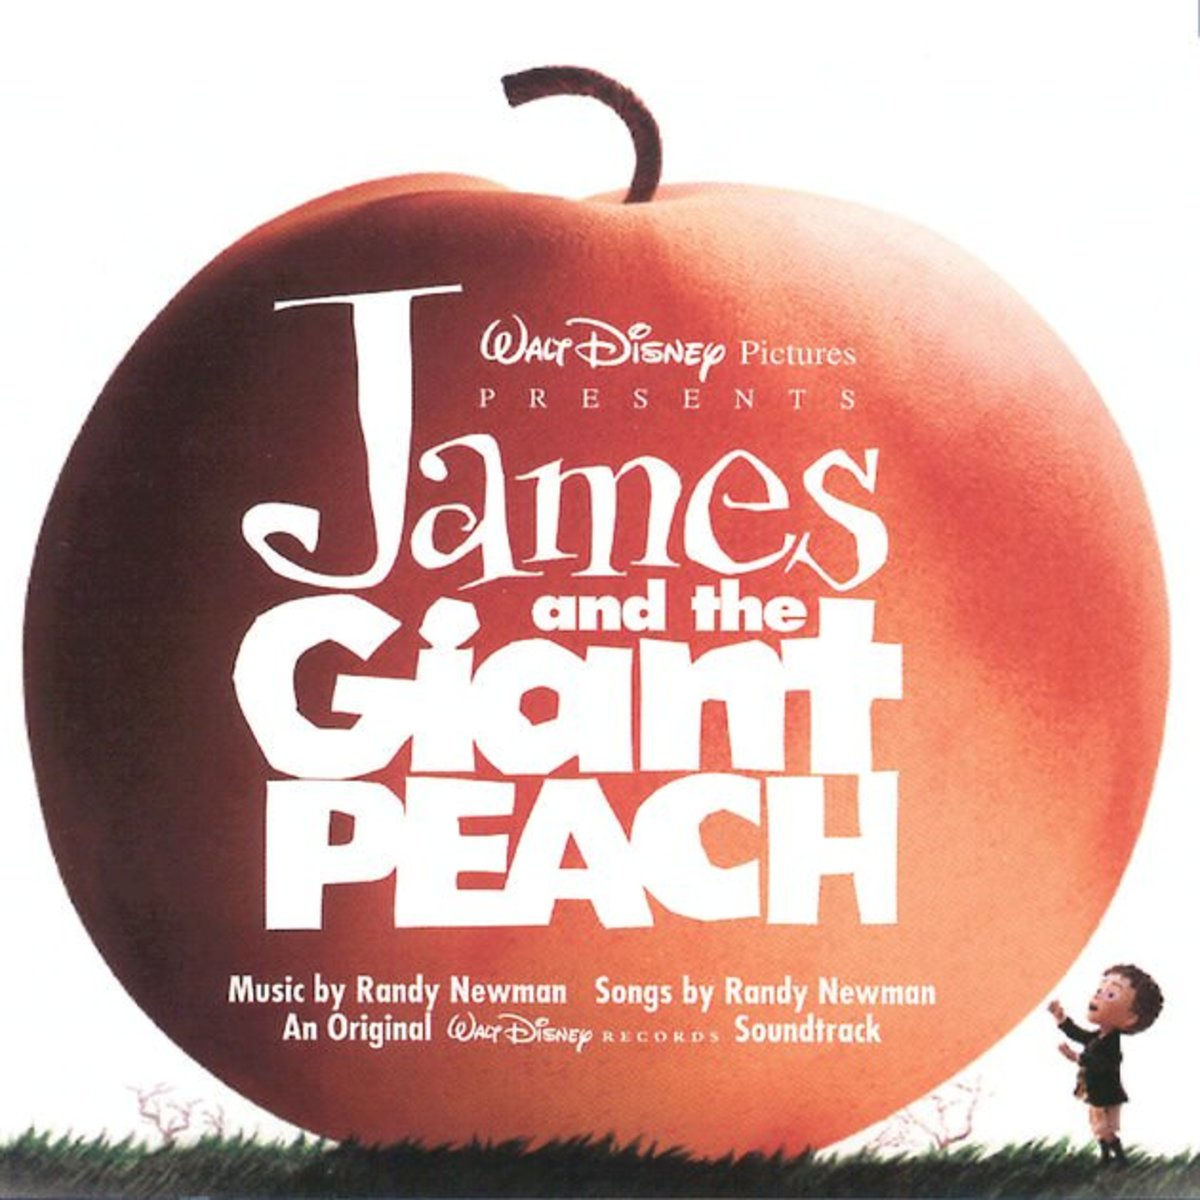 'James and the Giant Peach' Does Not Need a Reboot